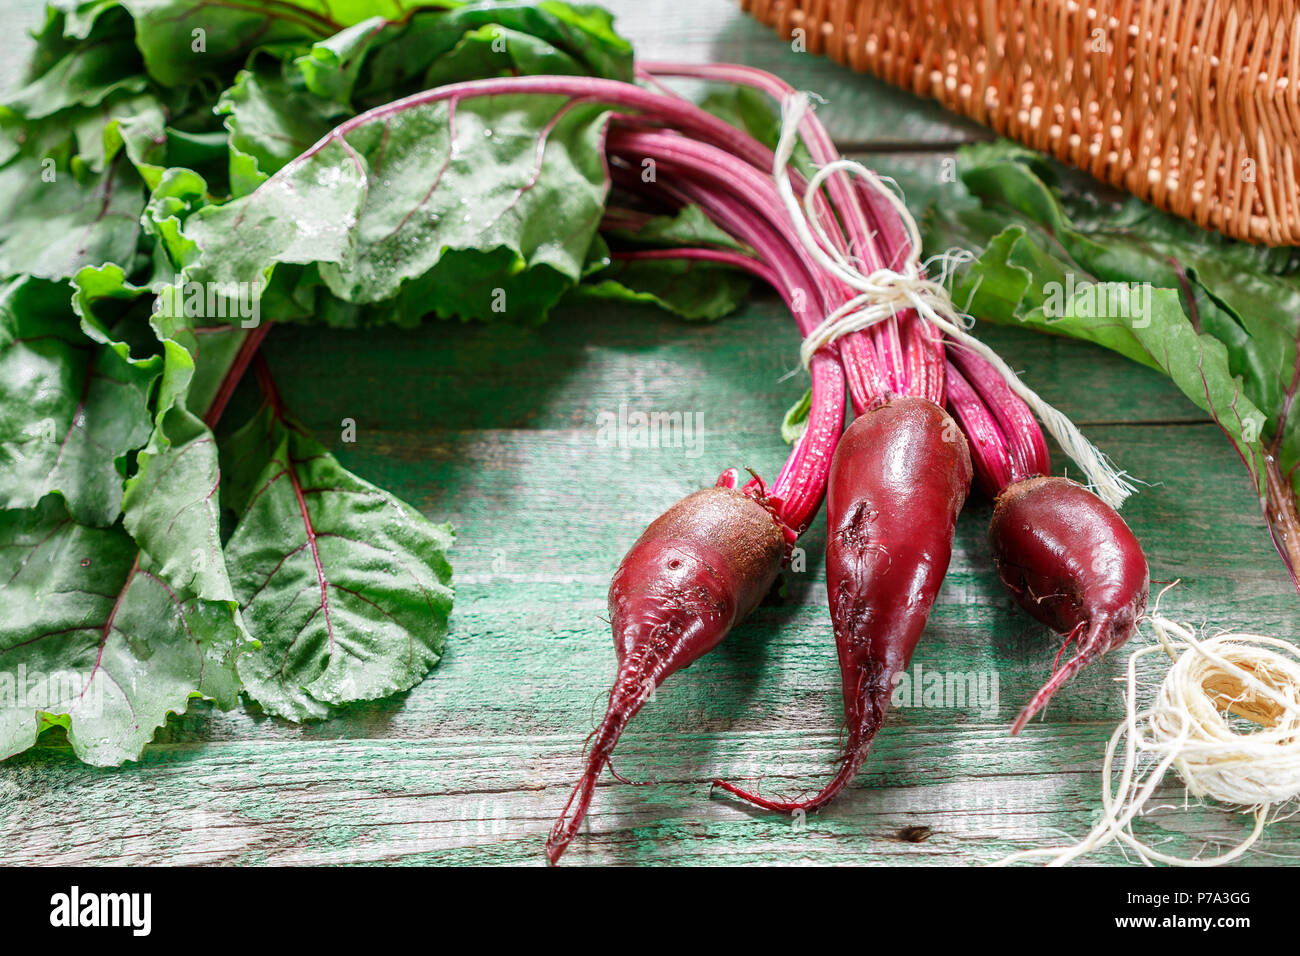 Organic red beets (beetroot) with green leaves on an old wooden table. Rustic style. Selective focus, copy space Stock Photo